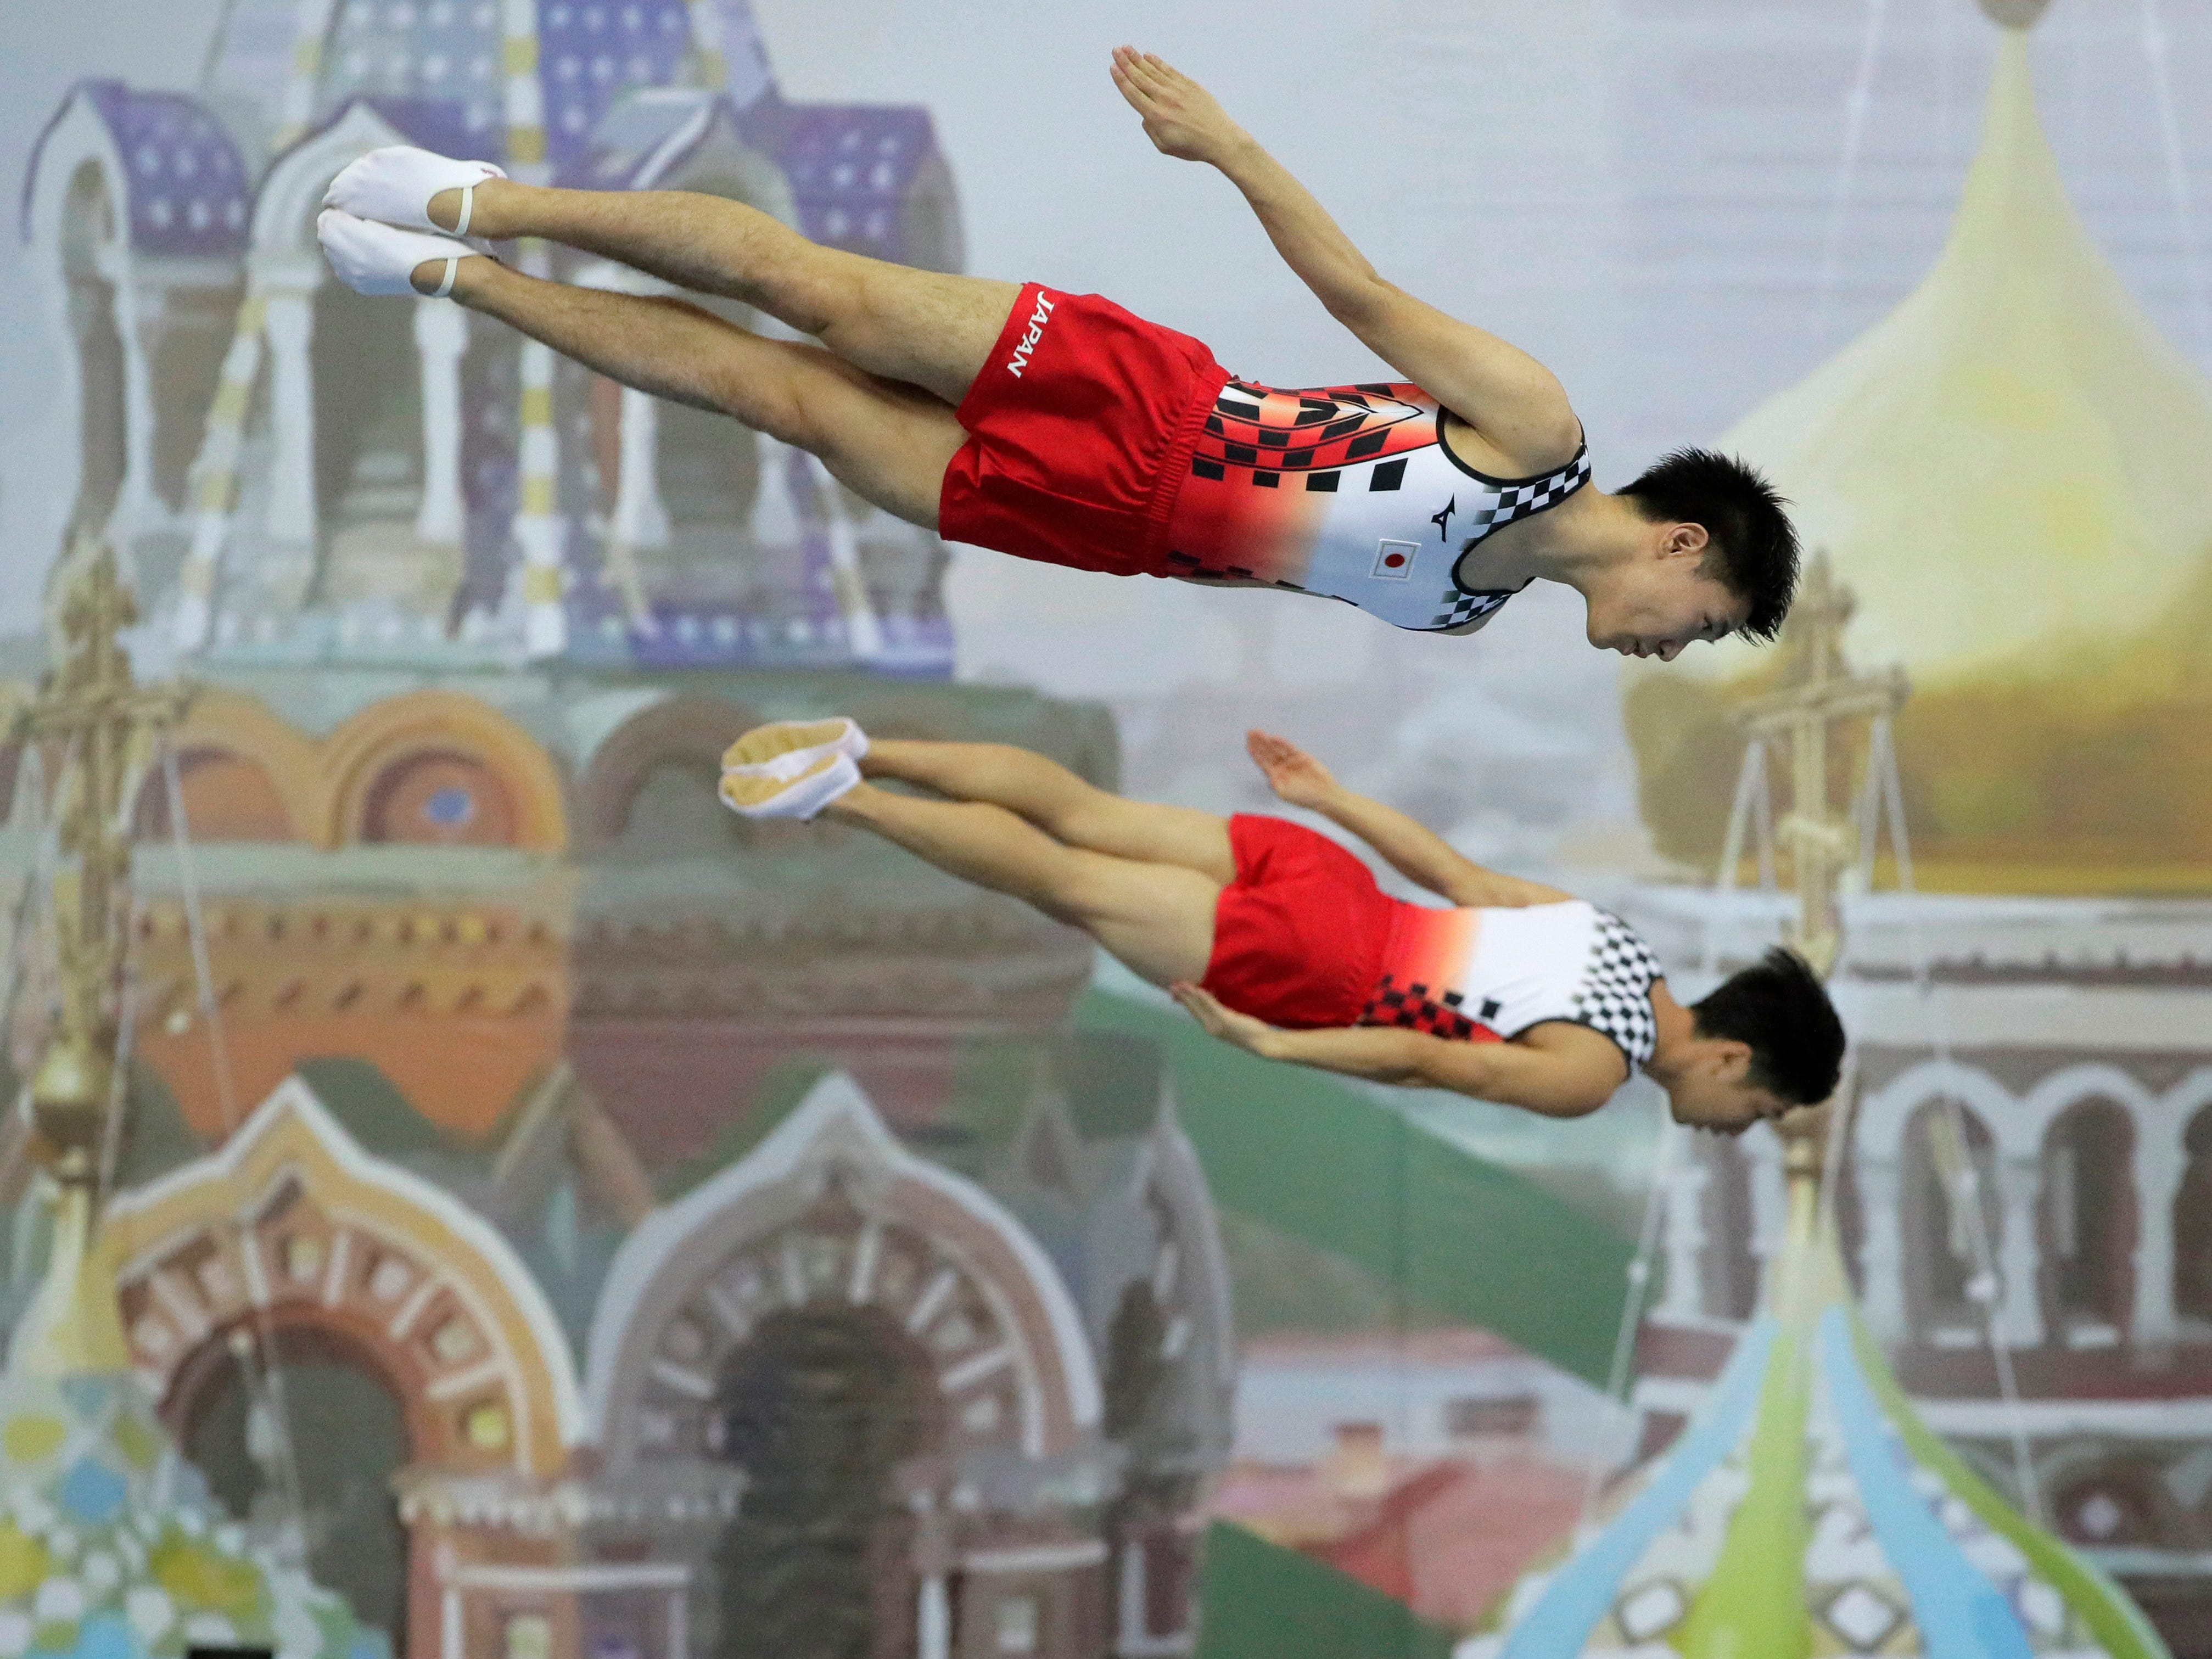 Yasuhiro Ueyama and Ryosuke Sakai of Japan perform during the men's synchronized qualifications of the 33rd Trampoline Gymnastics World Championships in St. Petersburg, Russia, Thursday, Nov. 8, 2018.